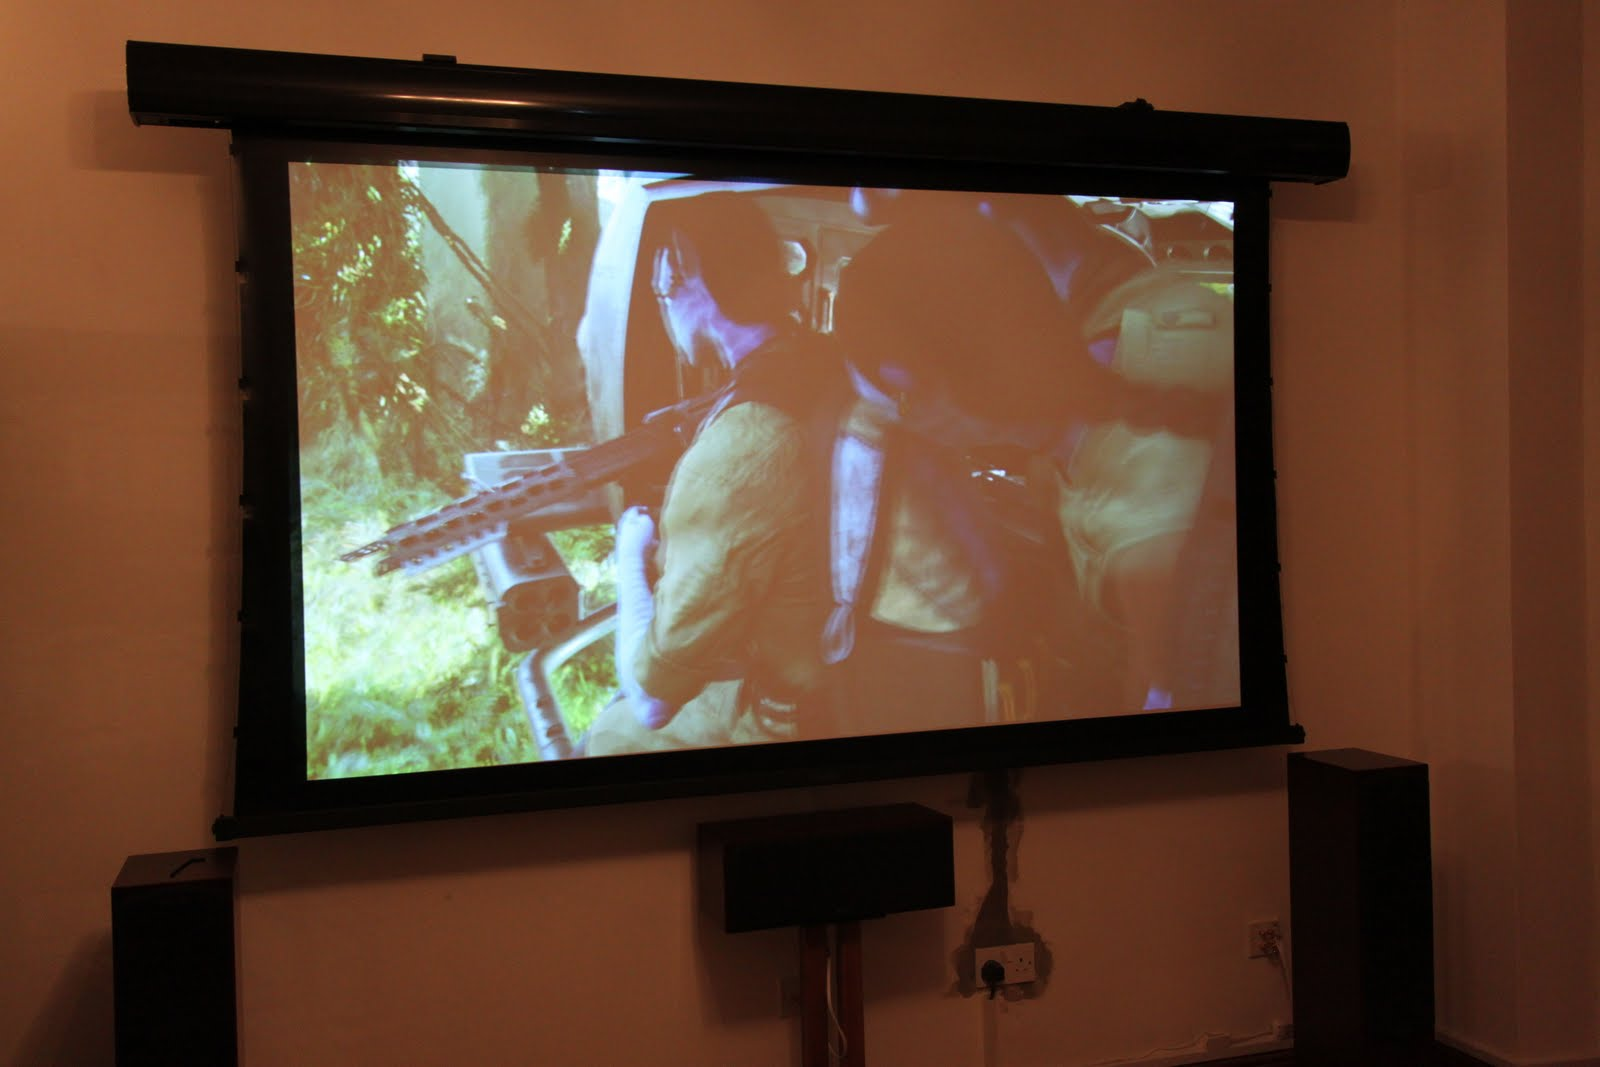 small resolution of epson 5500 full hd projector a 15m hdmi cable was chased into the wall to the wall mounted projector the home theater was then setup and calibrated